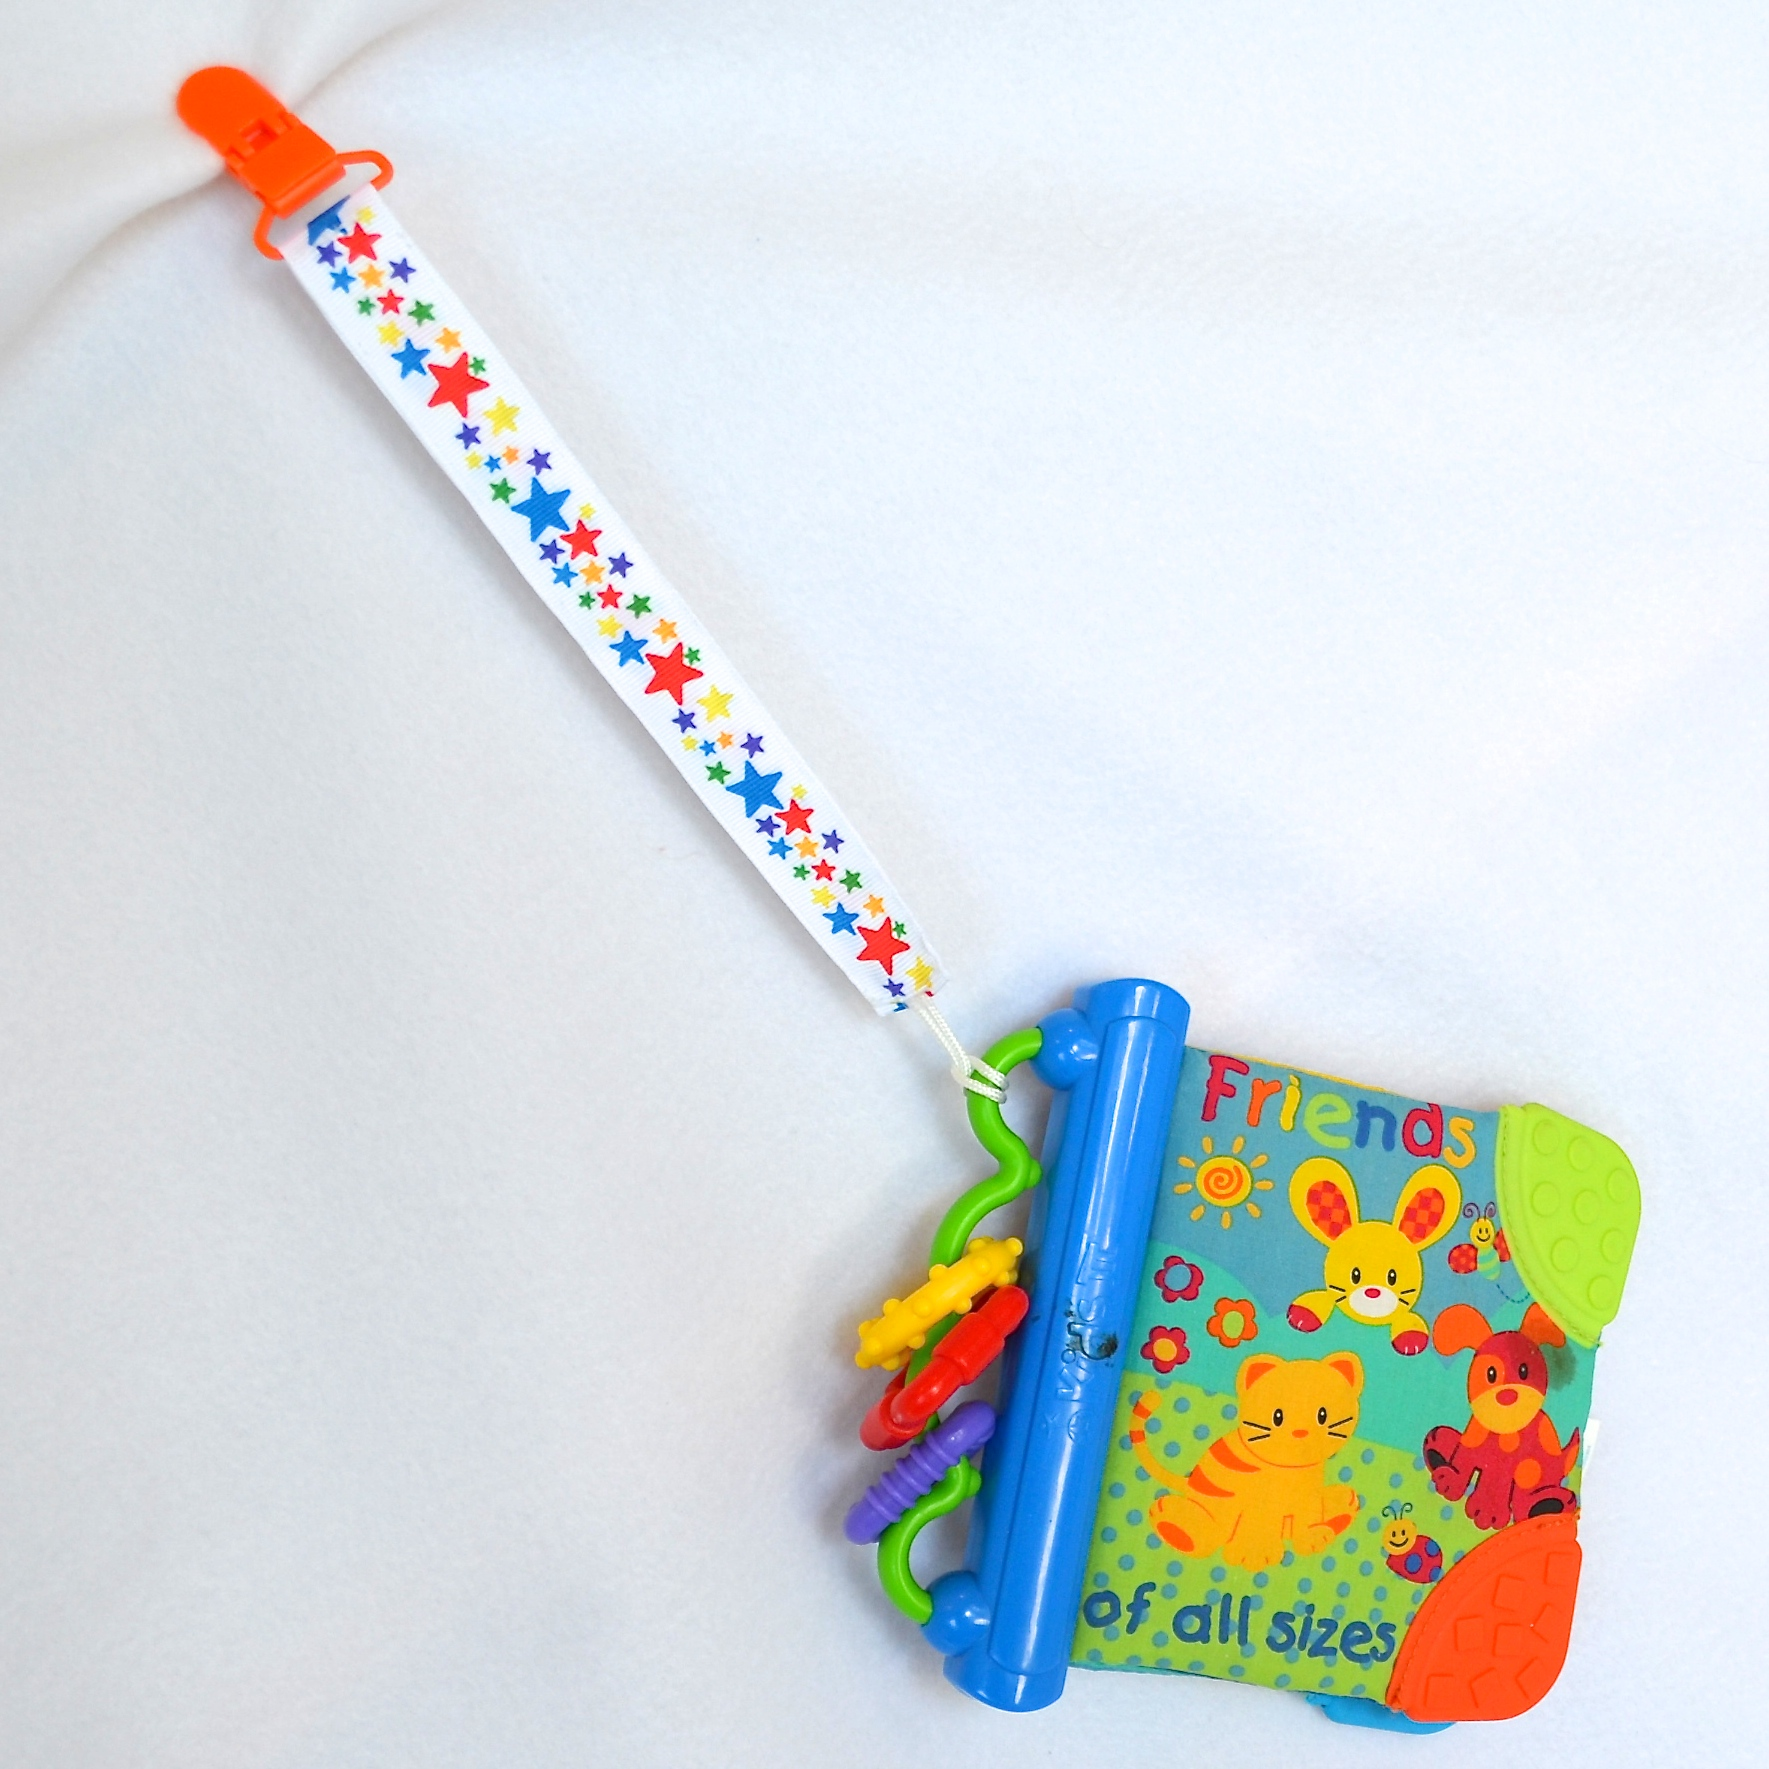 Pacifier-Clip-Holding-Book.JPG